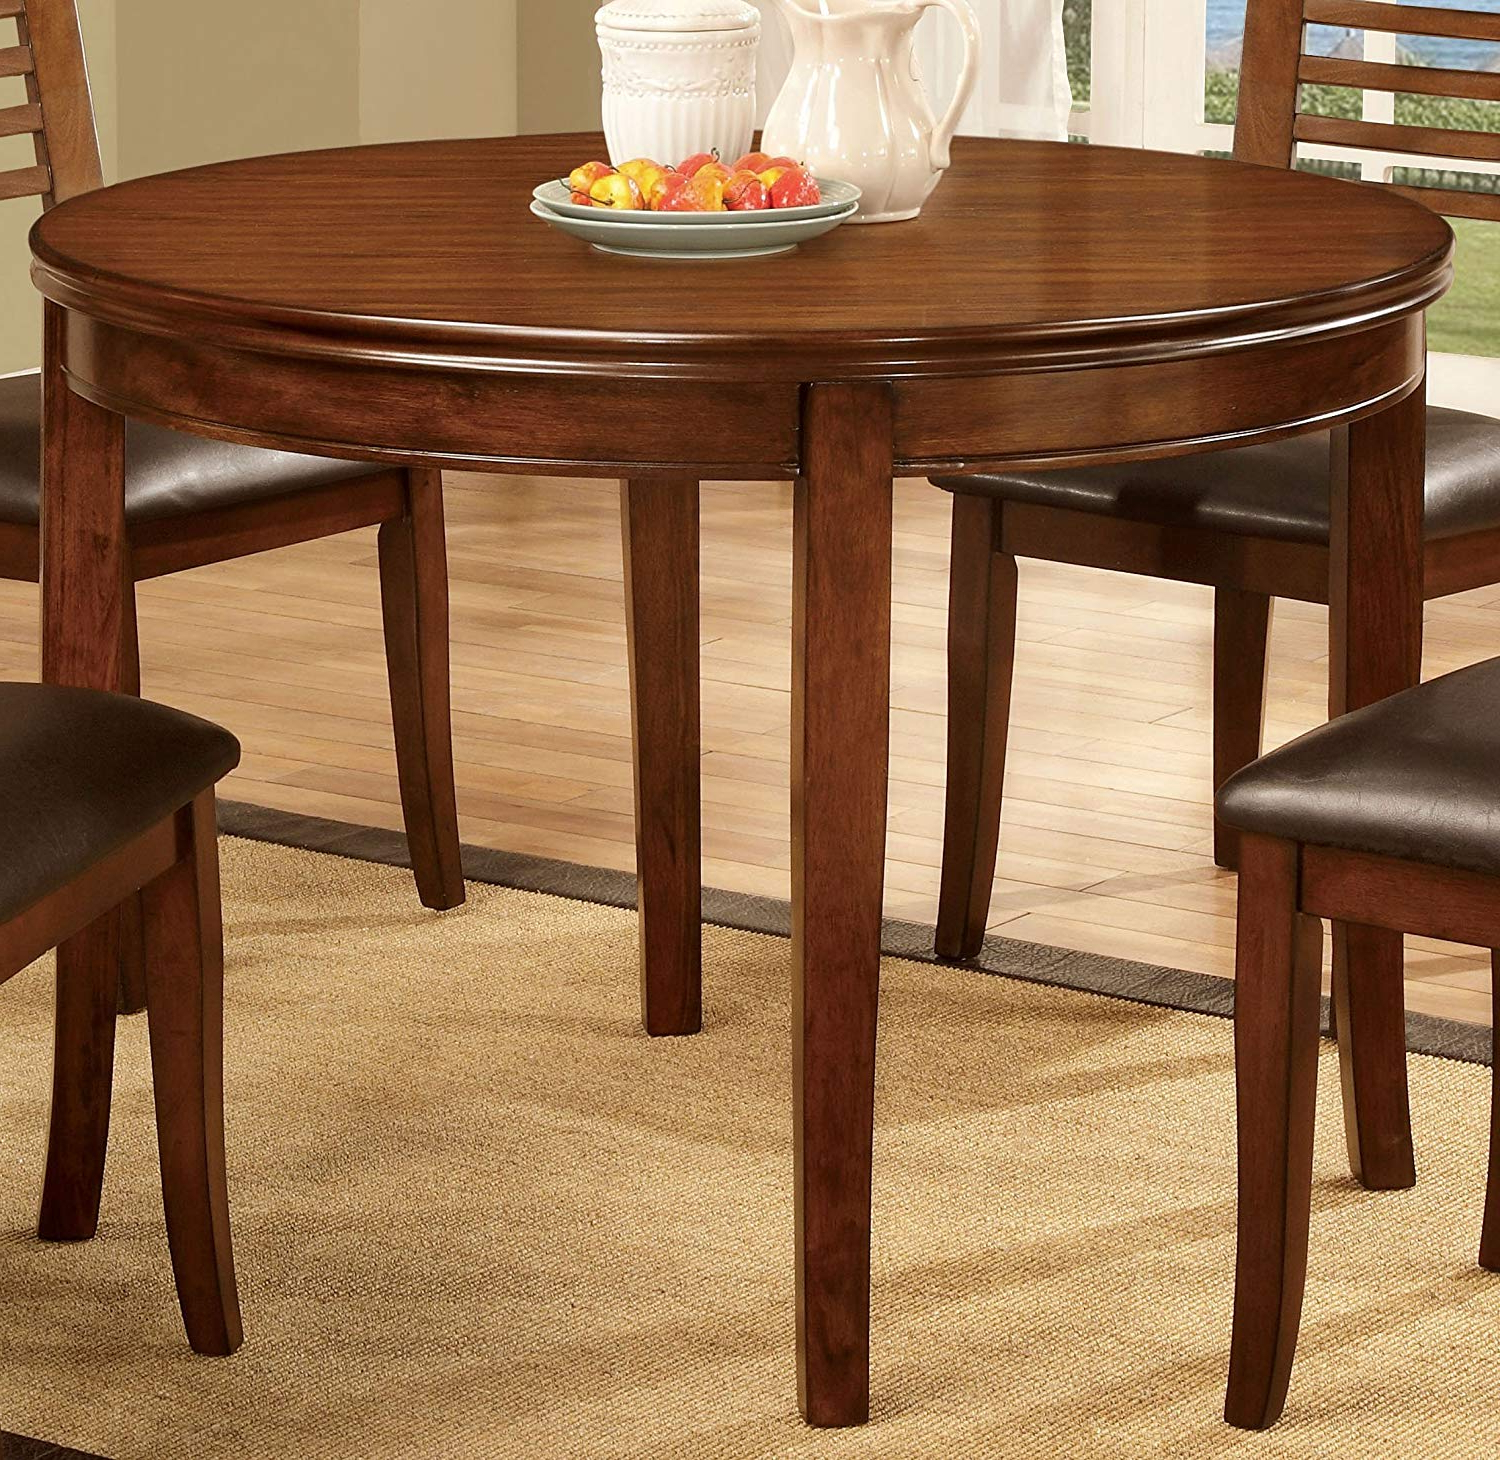 Furniture Of America Dekina Transitional Round Dining Table, Medium Oak With Regard To Well Liked Medium Dining Tables (View 18 of 25)